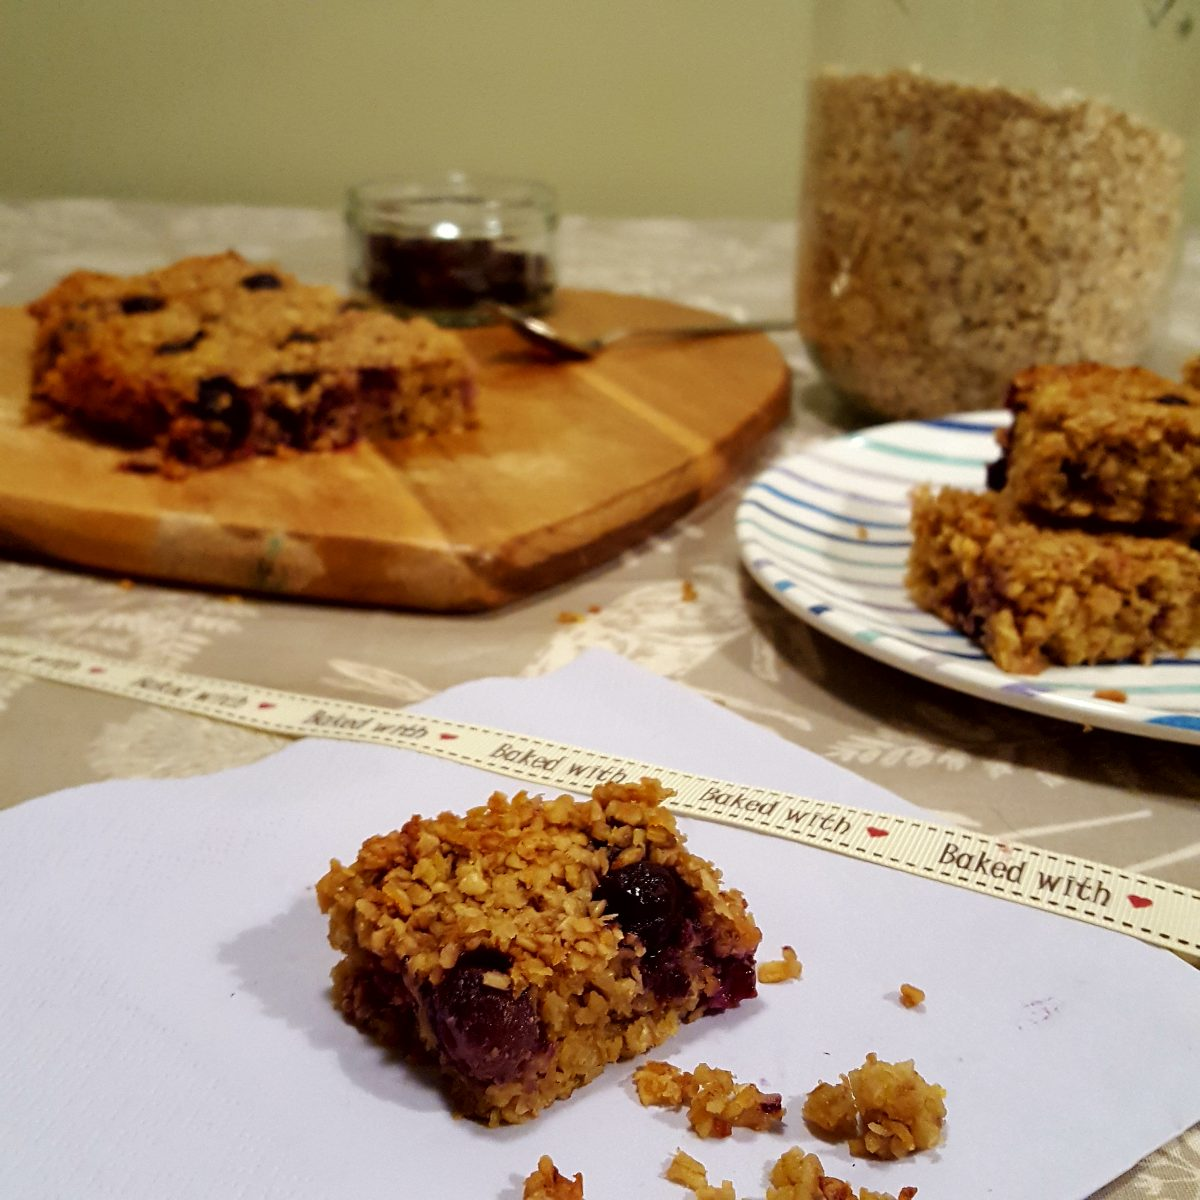 blueberry and carrot flapjacks